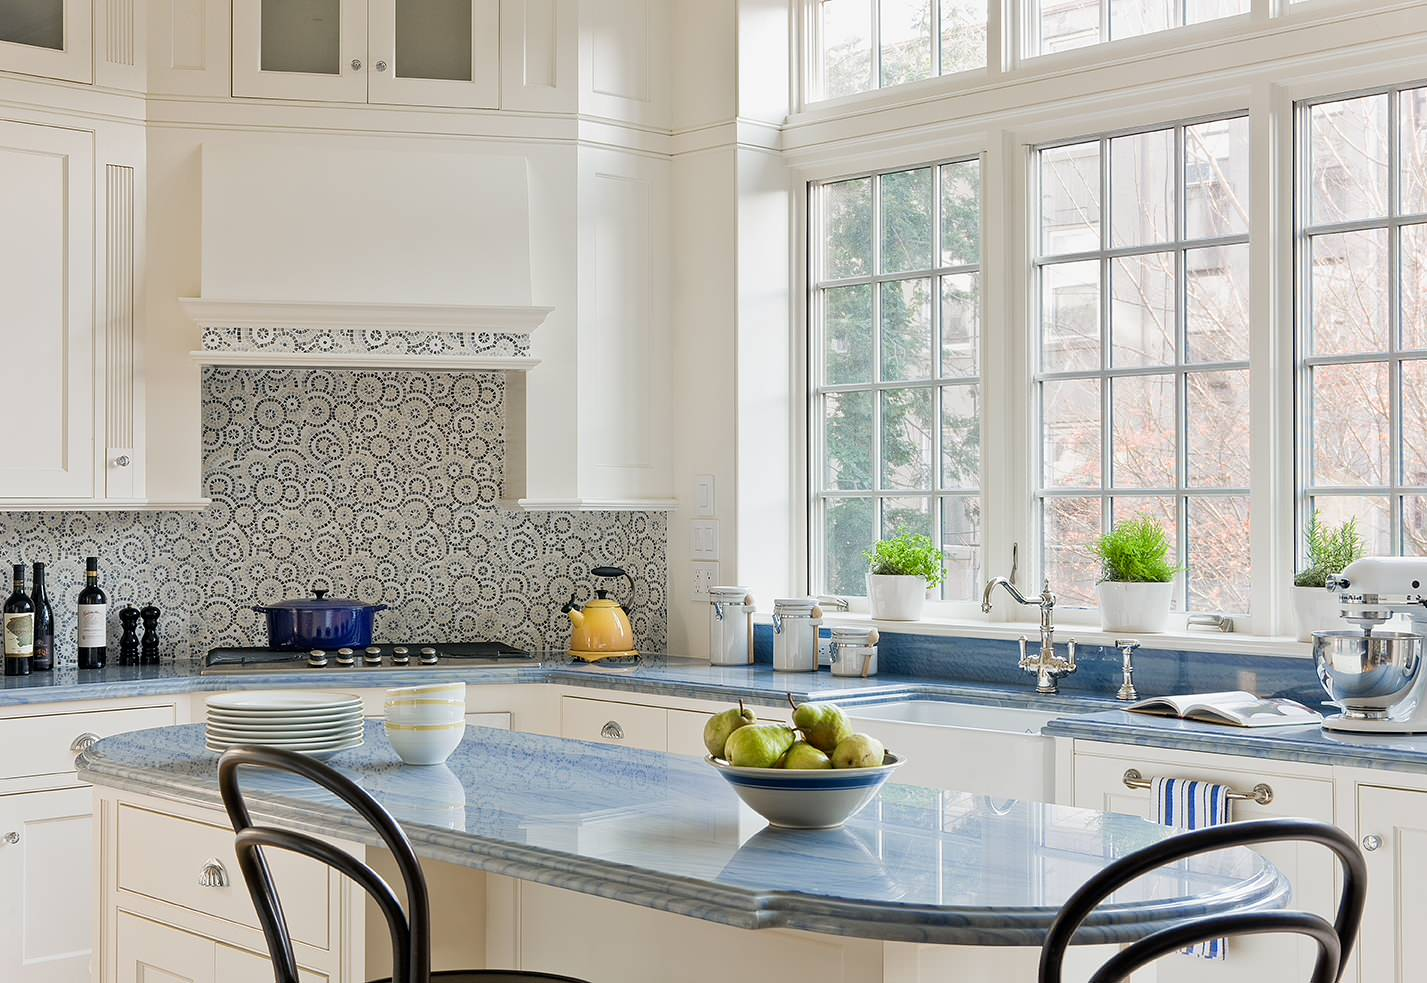 75 Beautiful Kitchen With Blue Countertops Pictures Ideas November 2020 Houzz